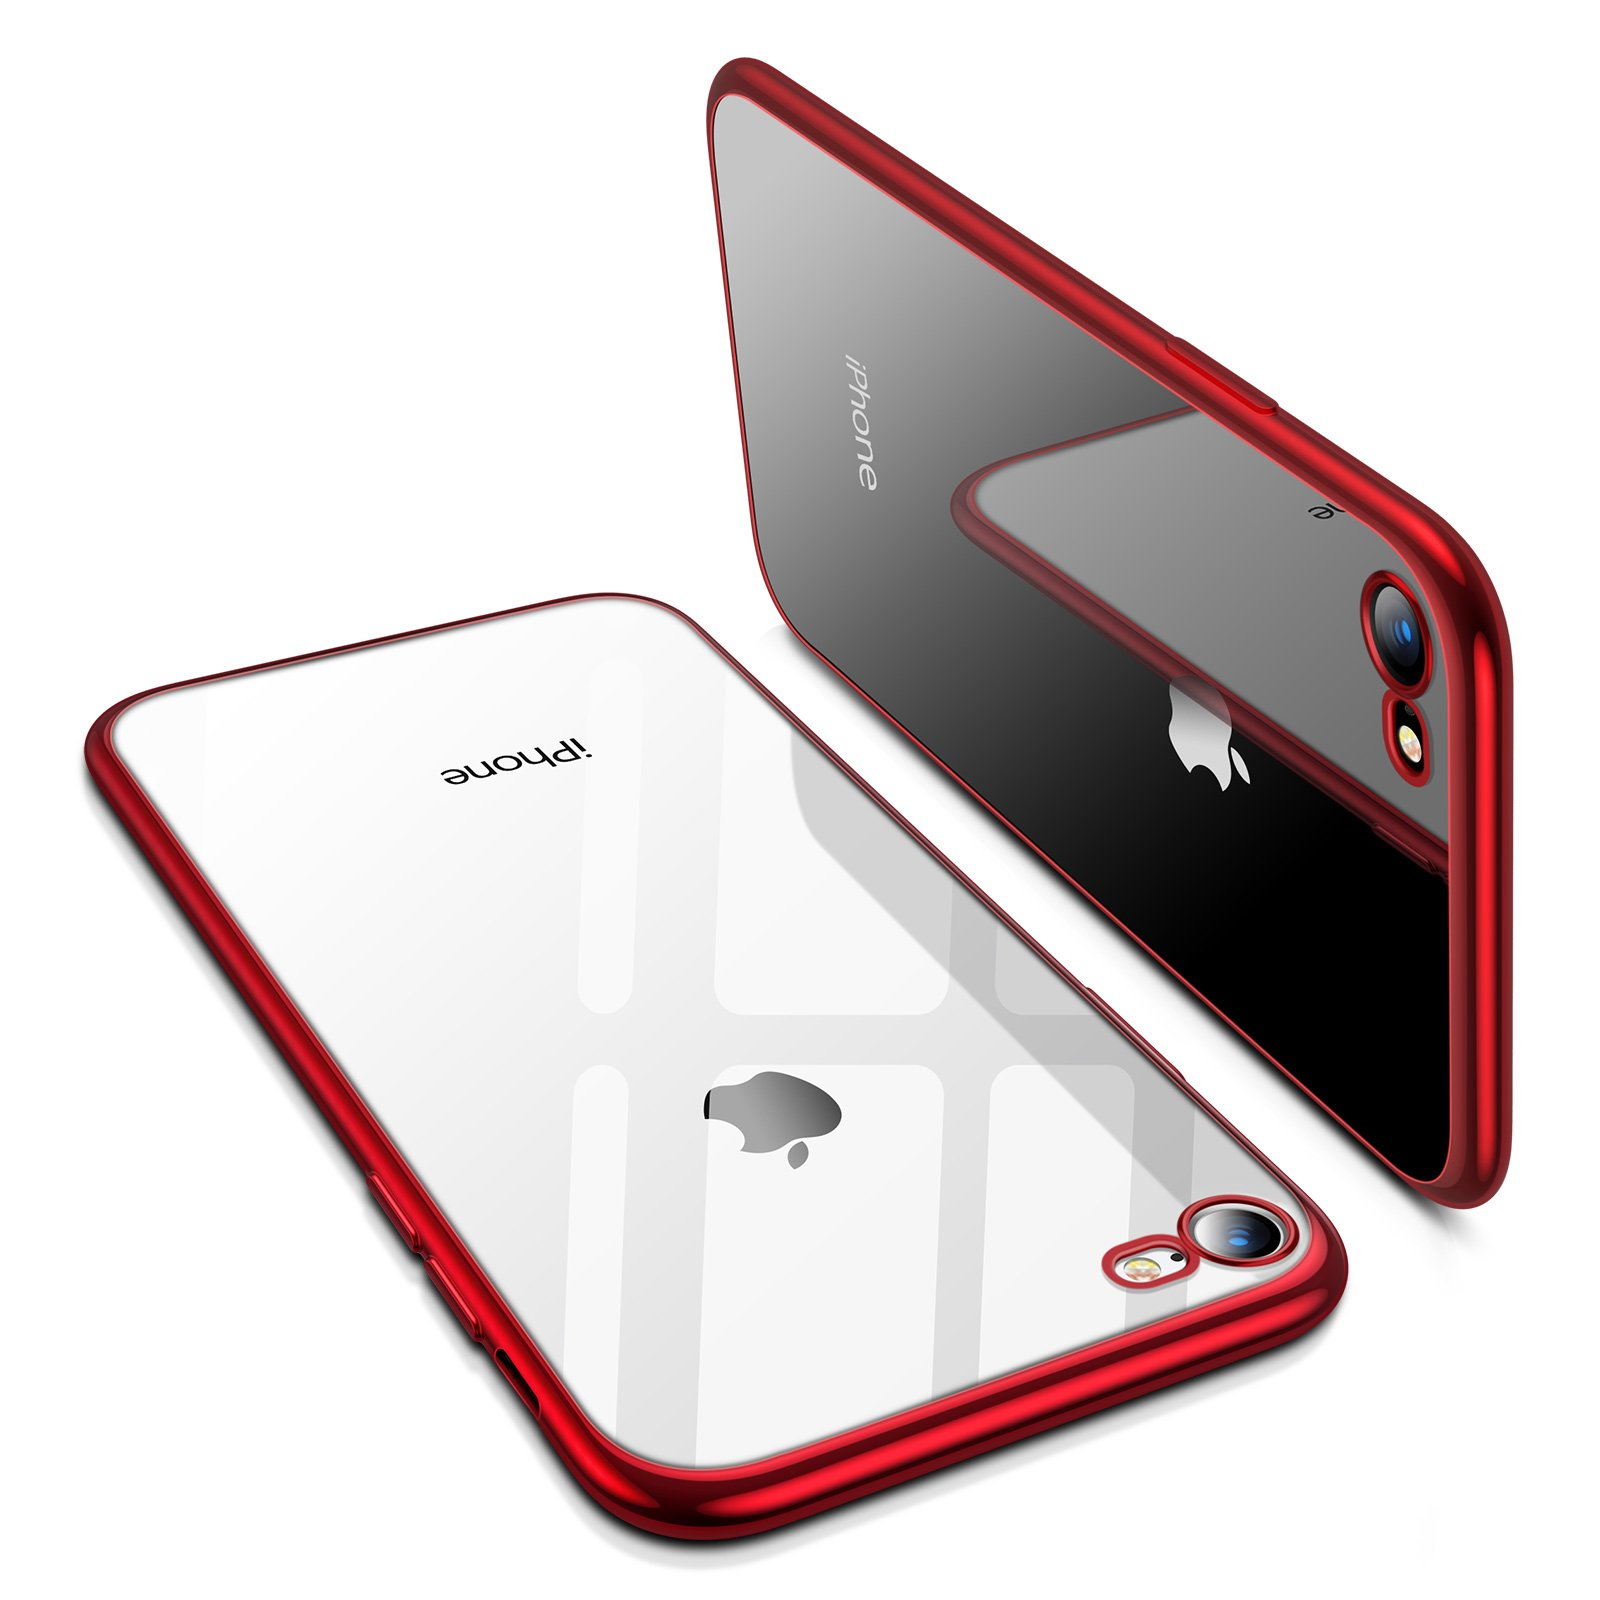 TORRAS Crystal Clear iPhone 8 Case/iPhone 7 Case, Soft Cover Case with Electroplated Frame Ultra Slim TPU Gel Case Compatible with iPhone 7/8 - Red